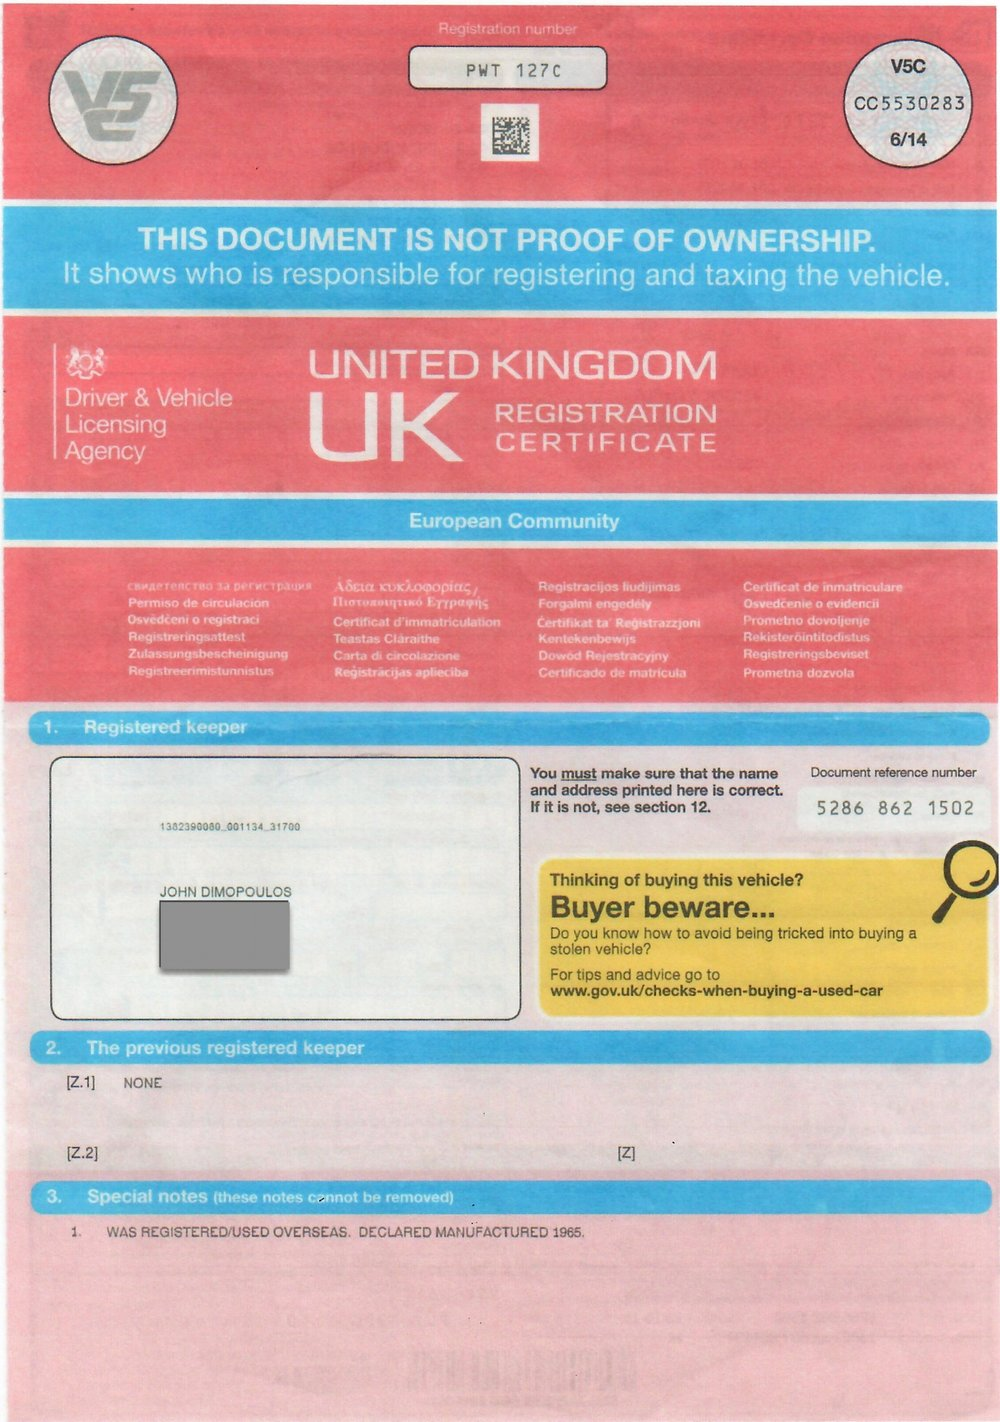 2015 Dimopoulos UK Registration Certificate pg1.jpeg